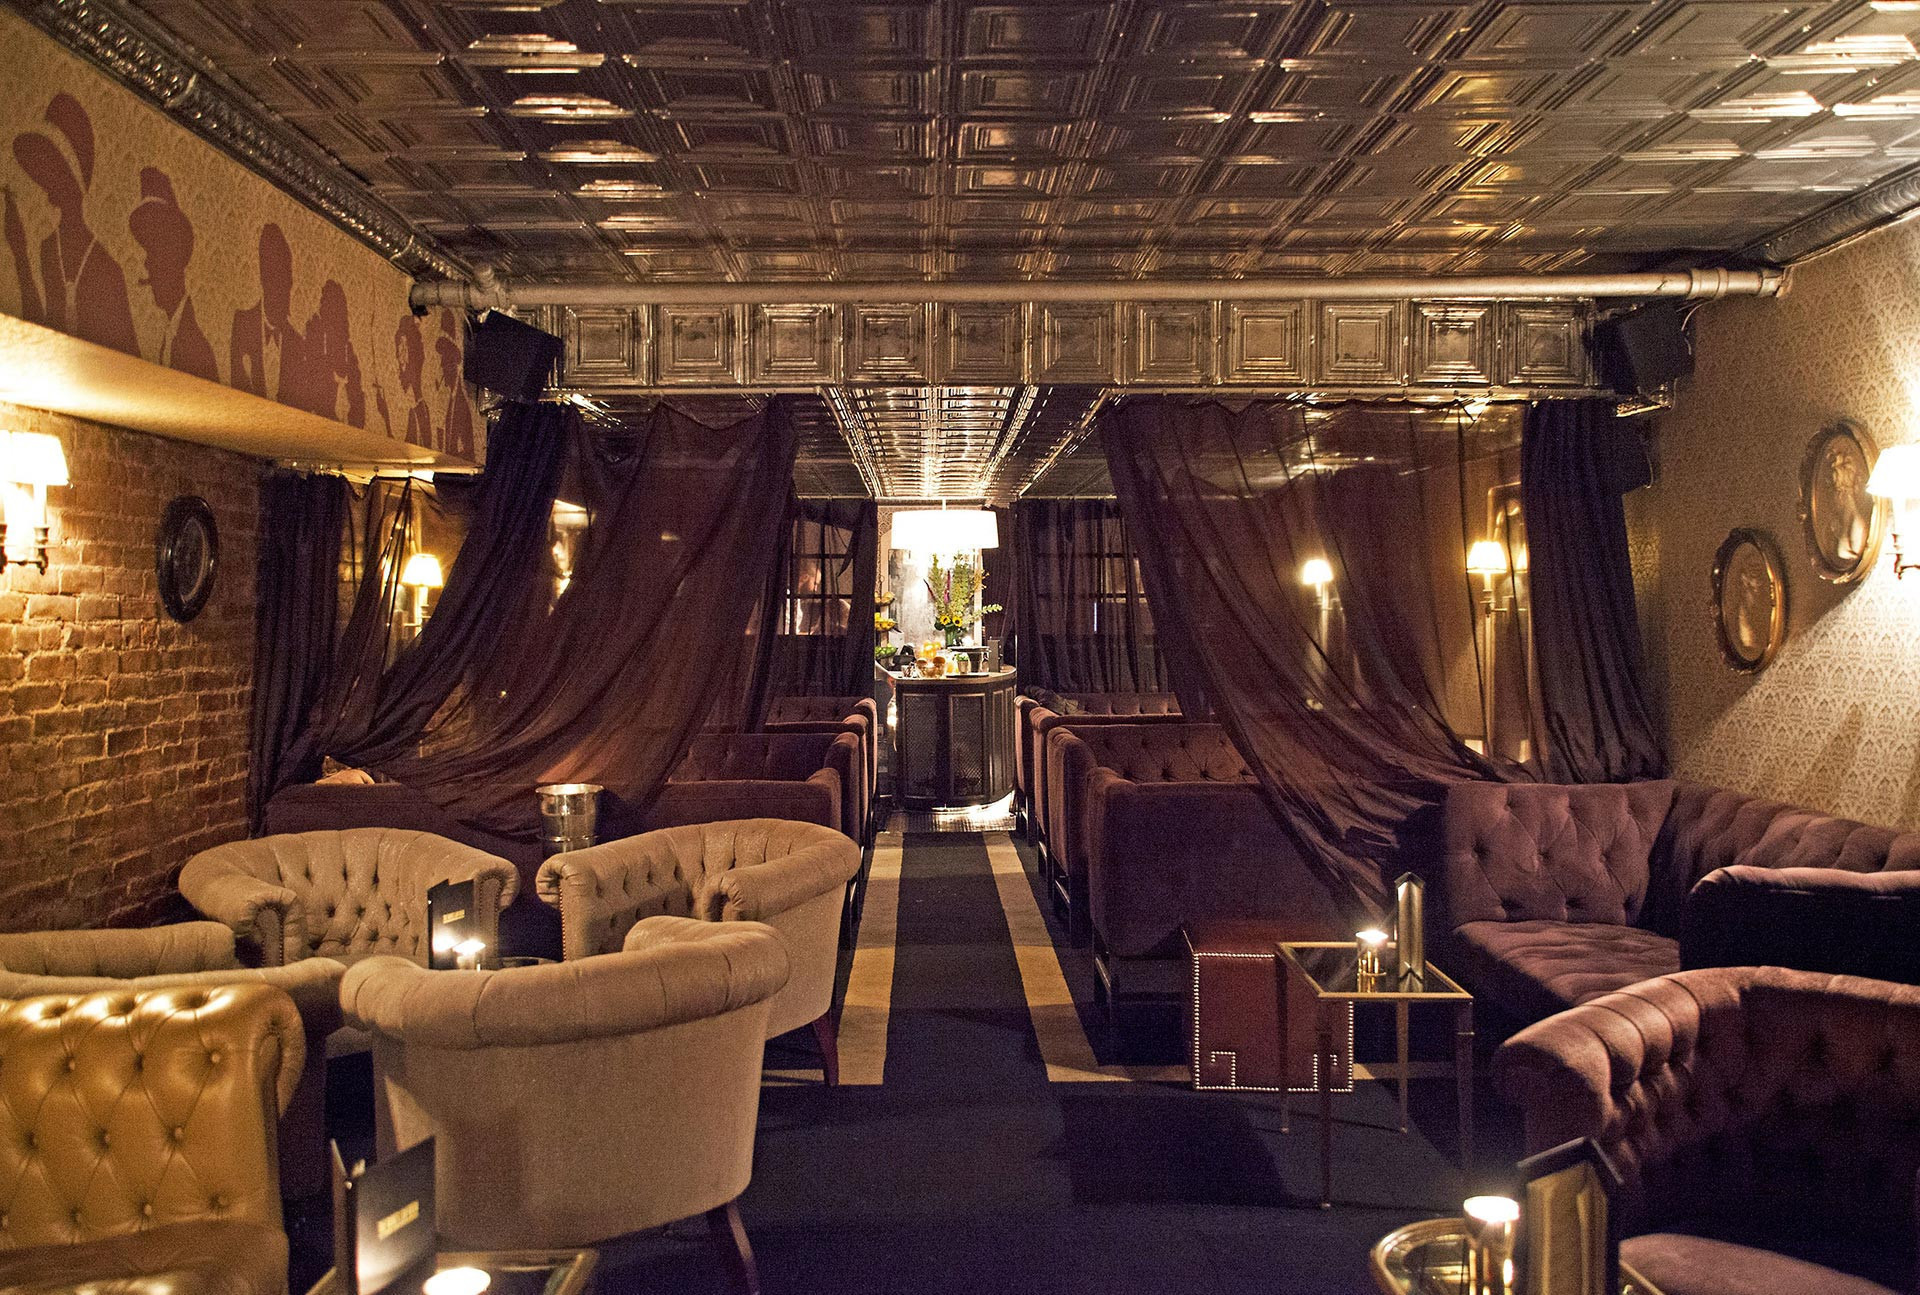 The 6 Best Rooftop Bars Midtown East New York City Has To Offer ...